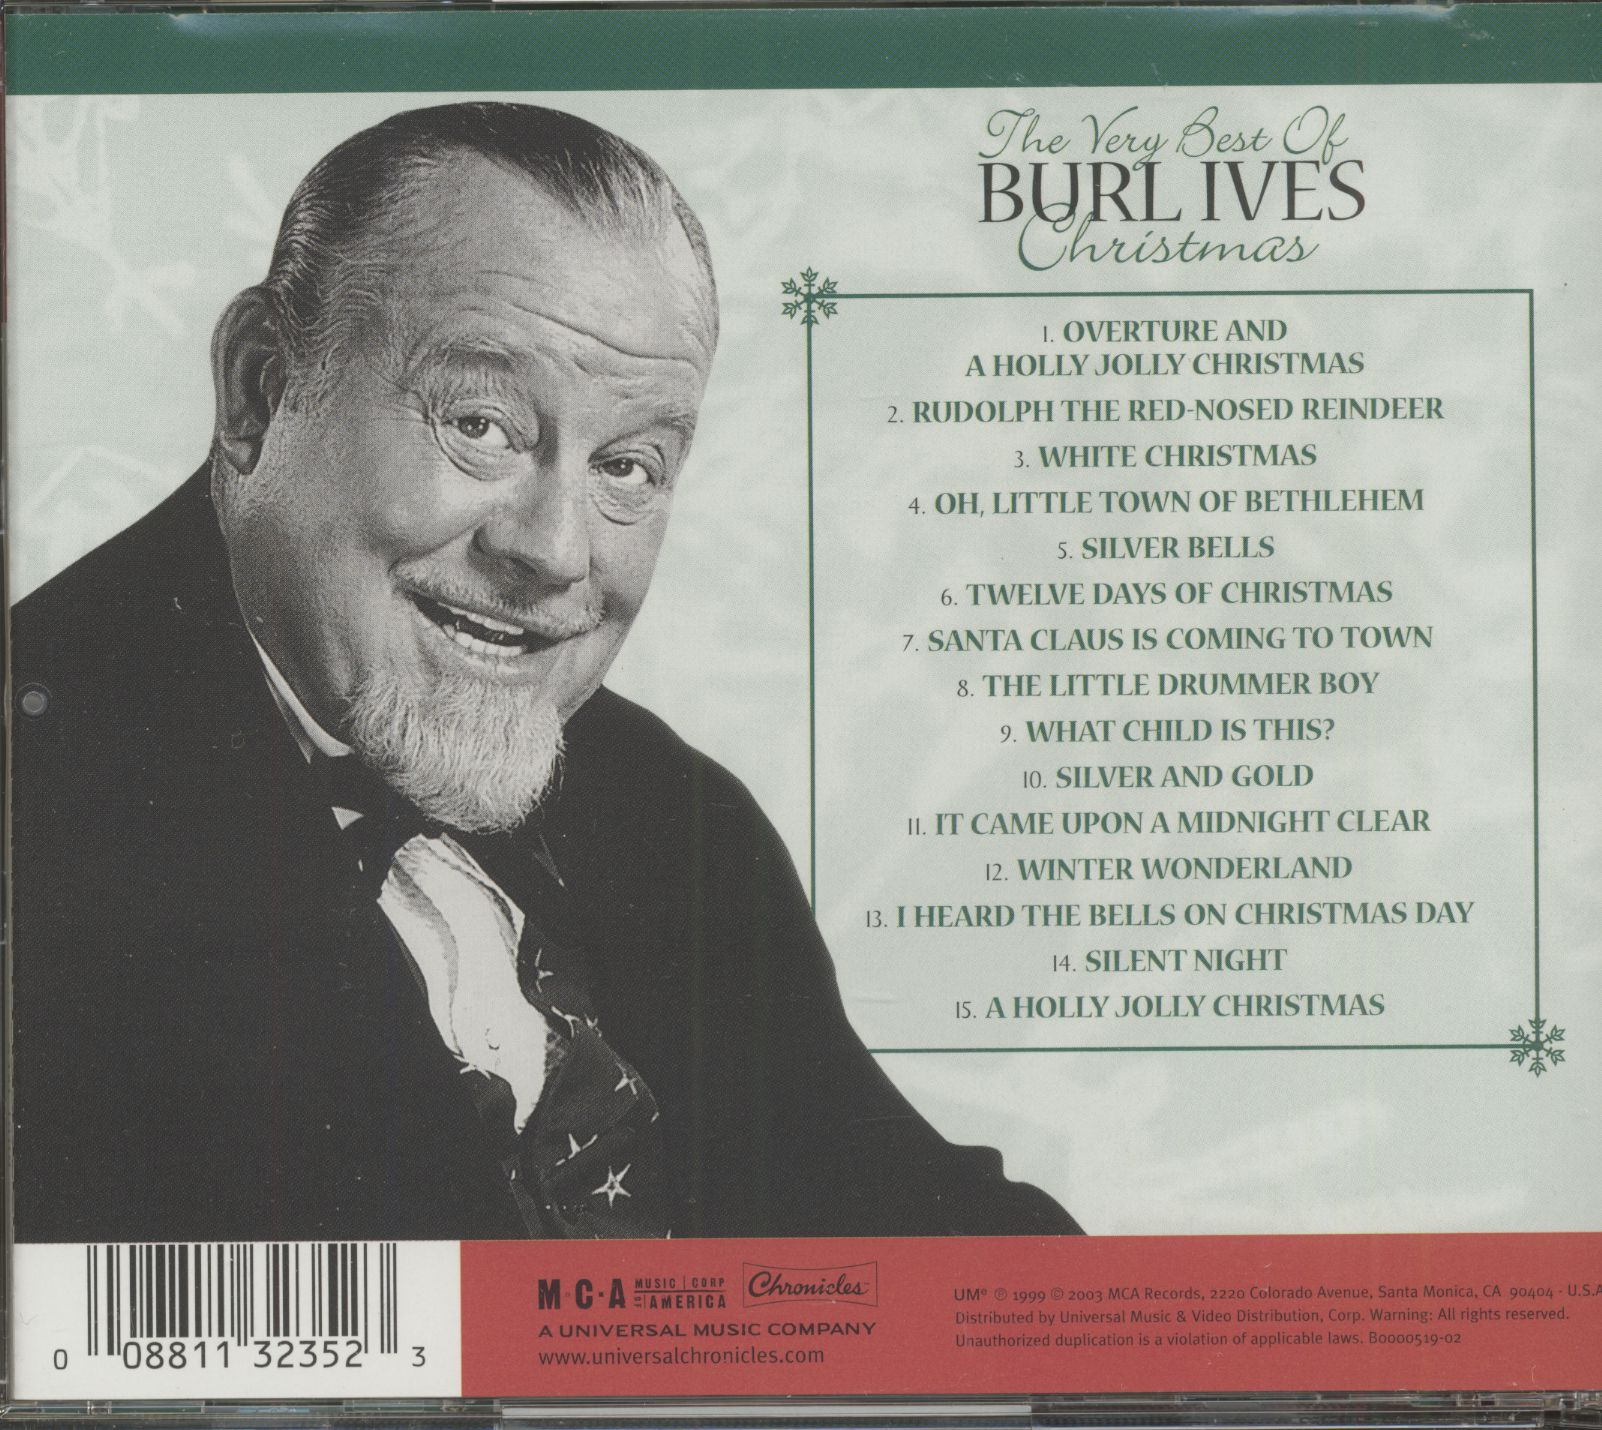 Burl Ives Christmas.Burl Ives Christmas Collection 20th Century Masters